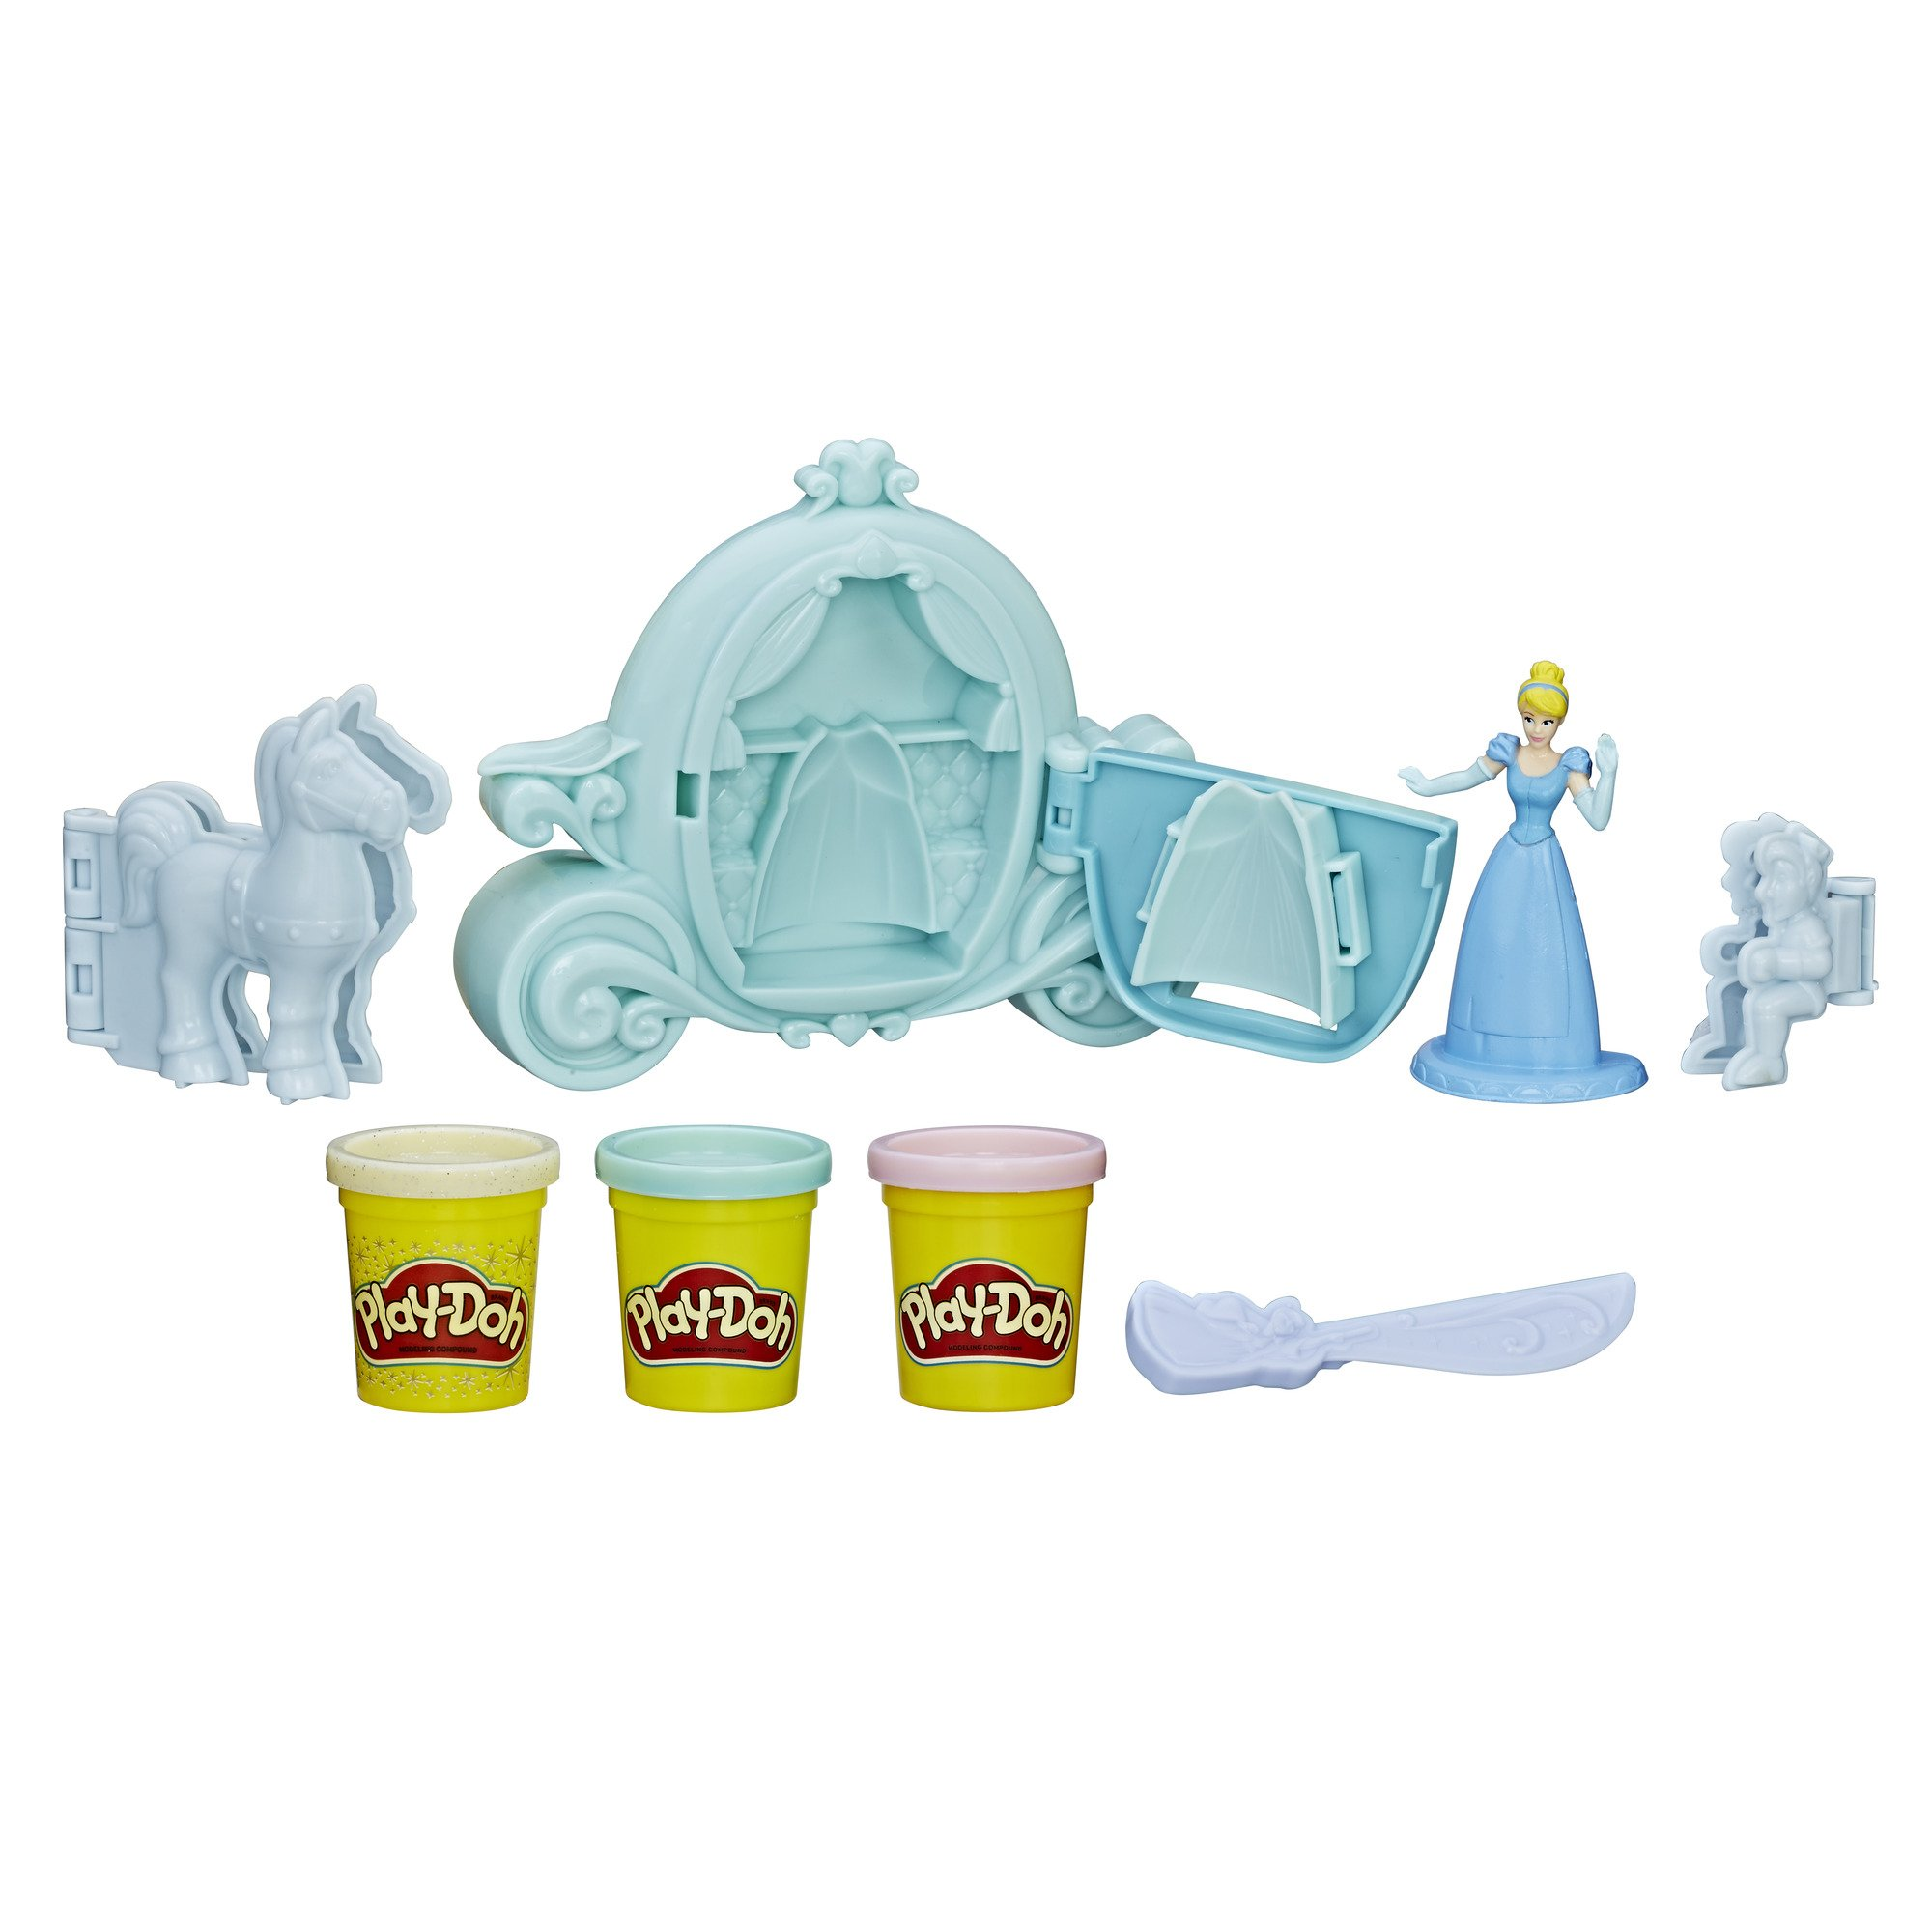 Play-Doh Royal Carriage Featuring Disney Princess Cinderella, Ages 3 and up